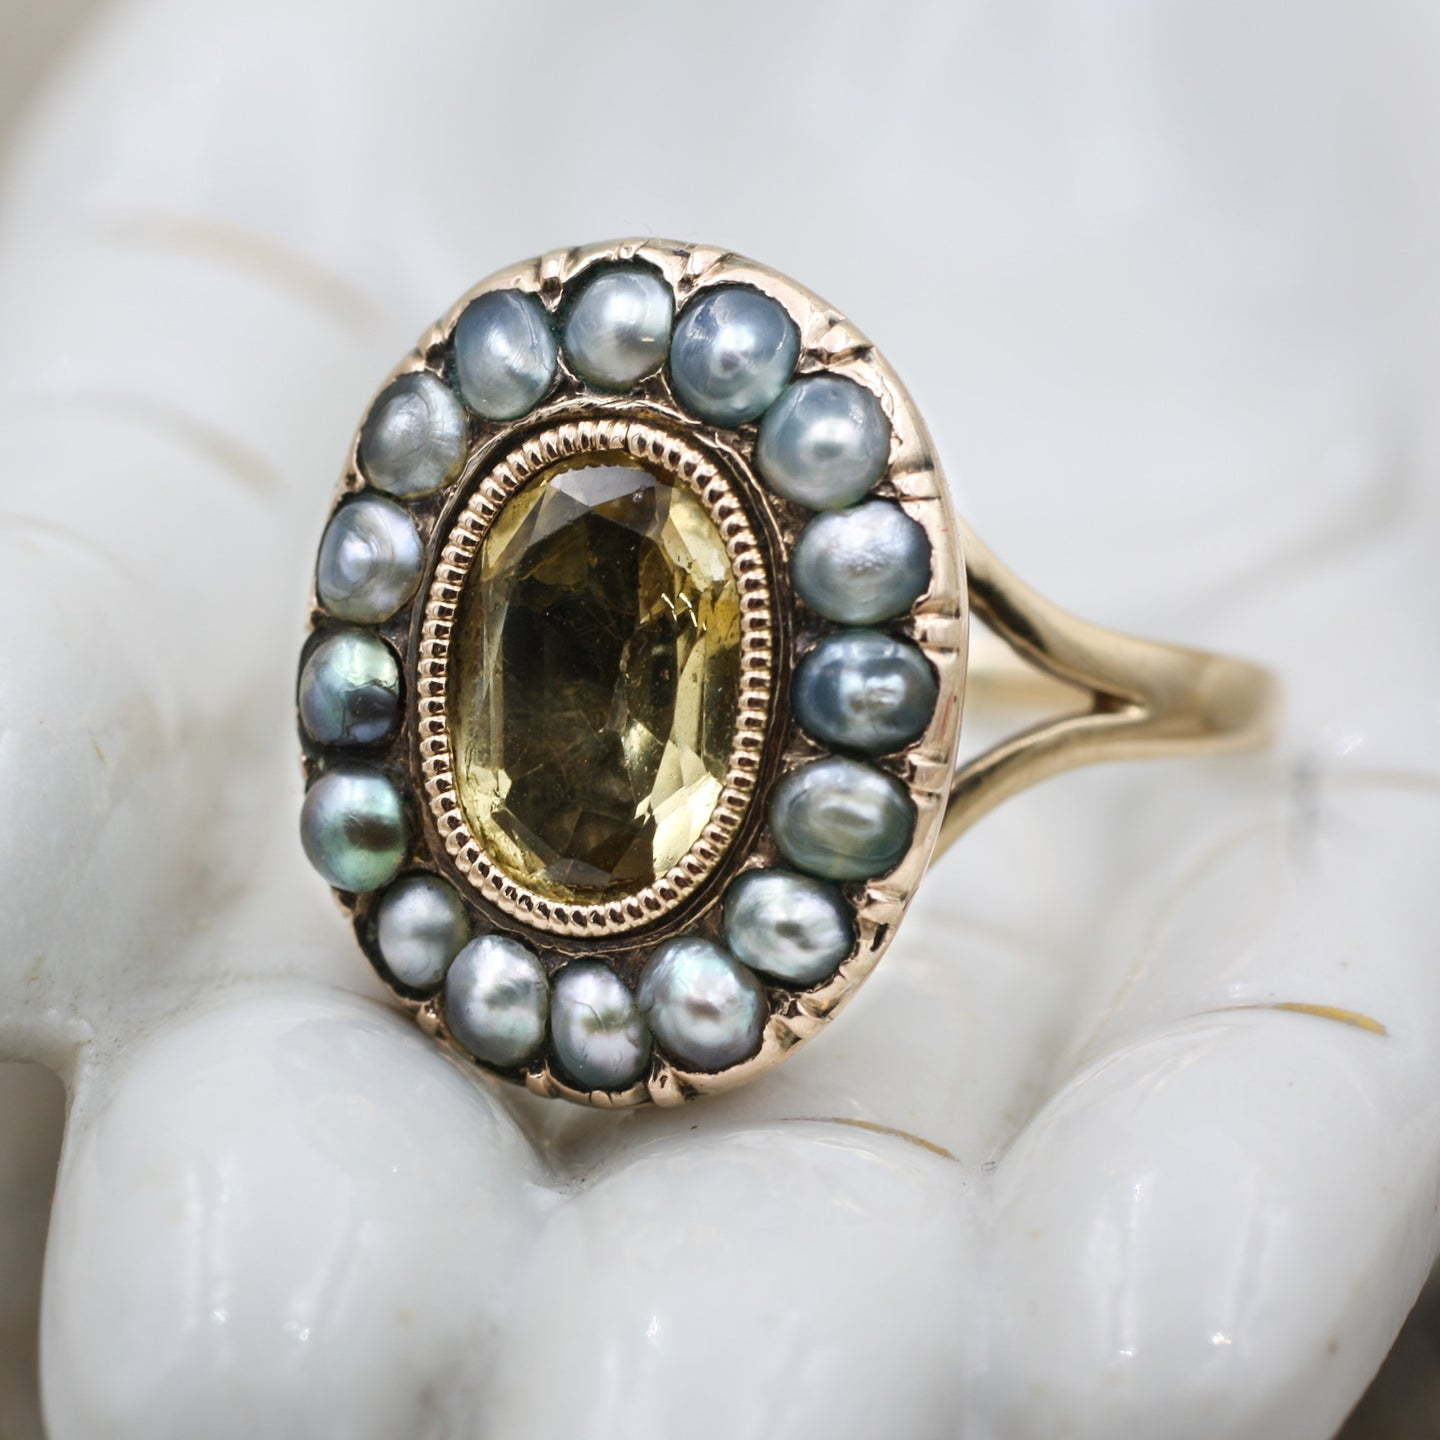 c1850 Natural Black Pearl and Citrine Ring